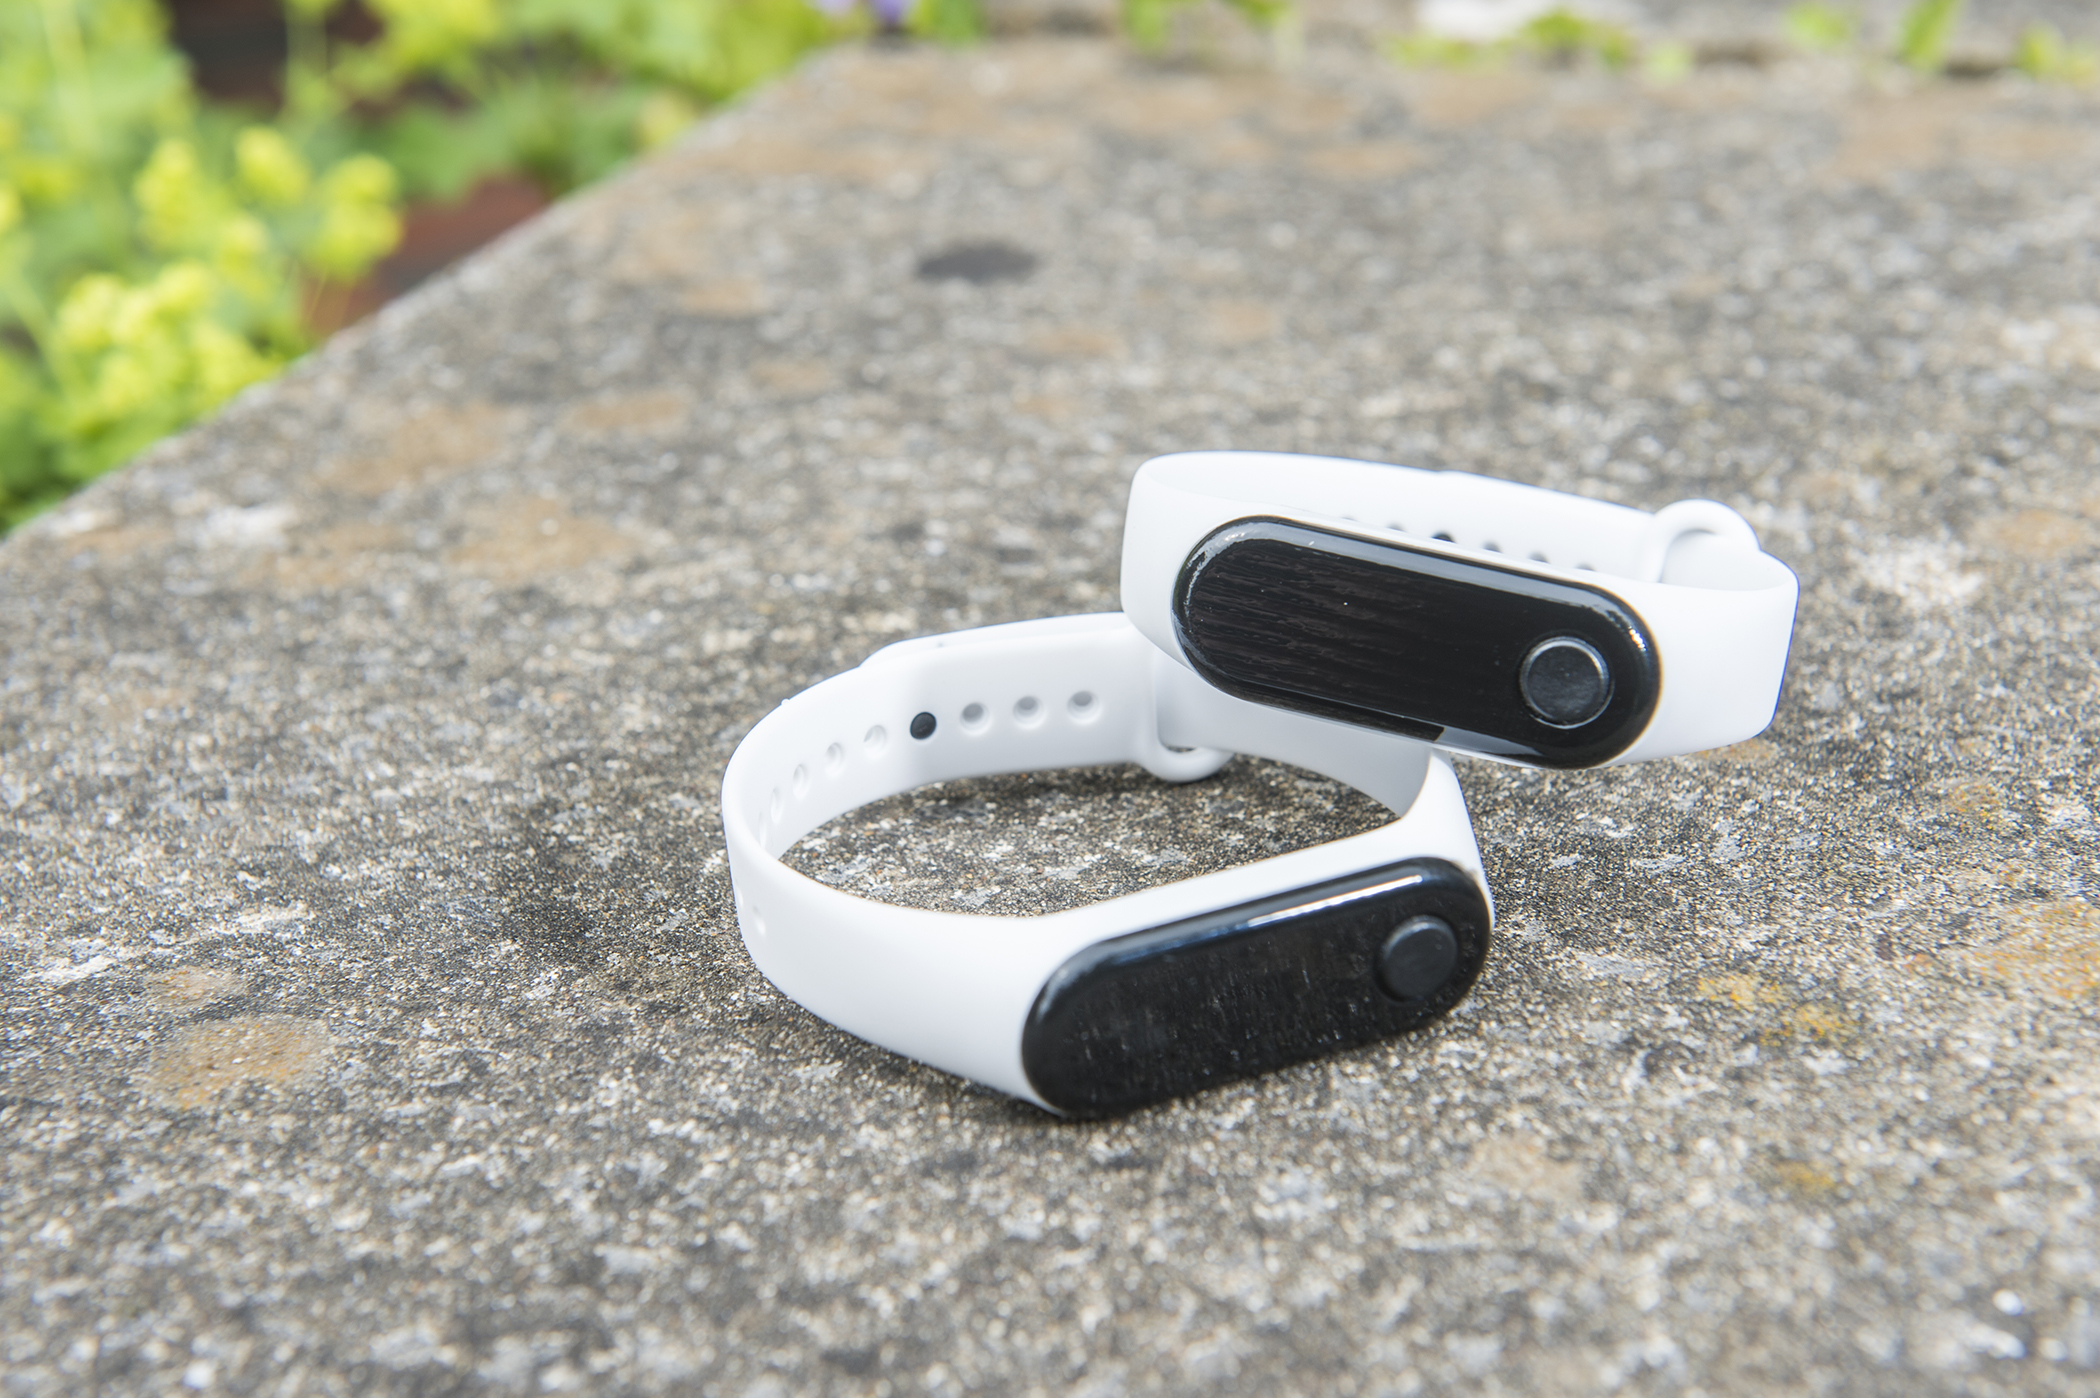 The imagined VybPro will be small enough to wear on the wrist